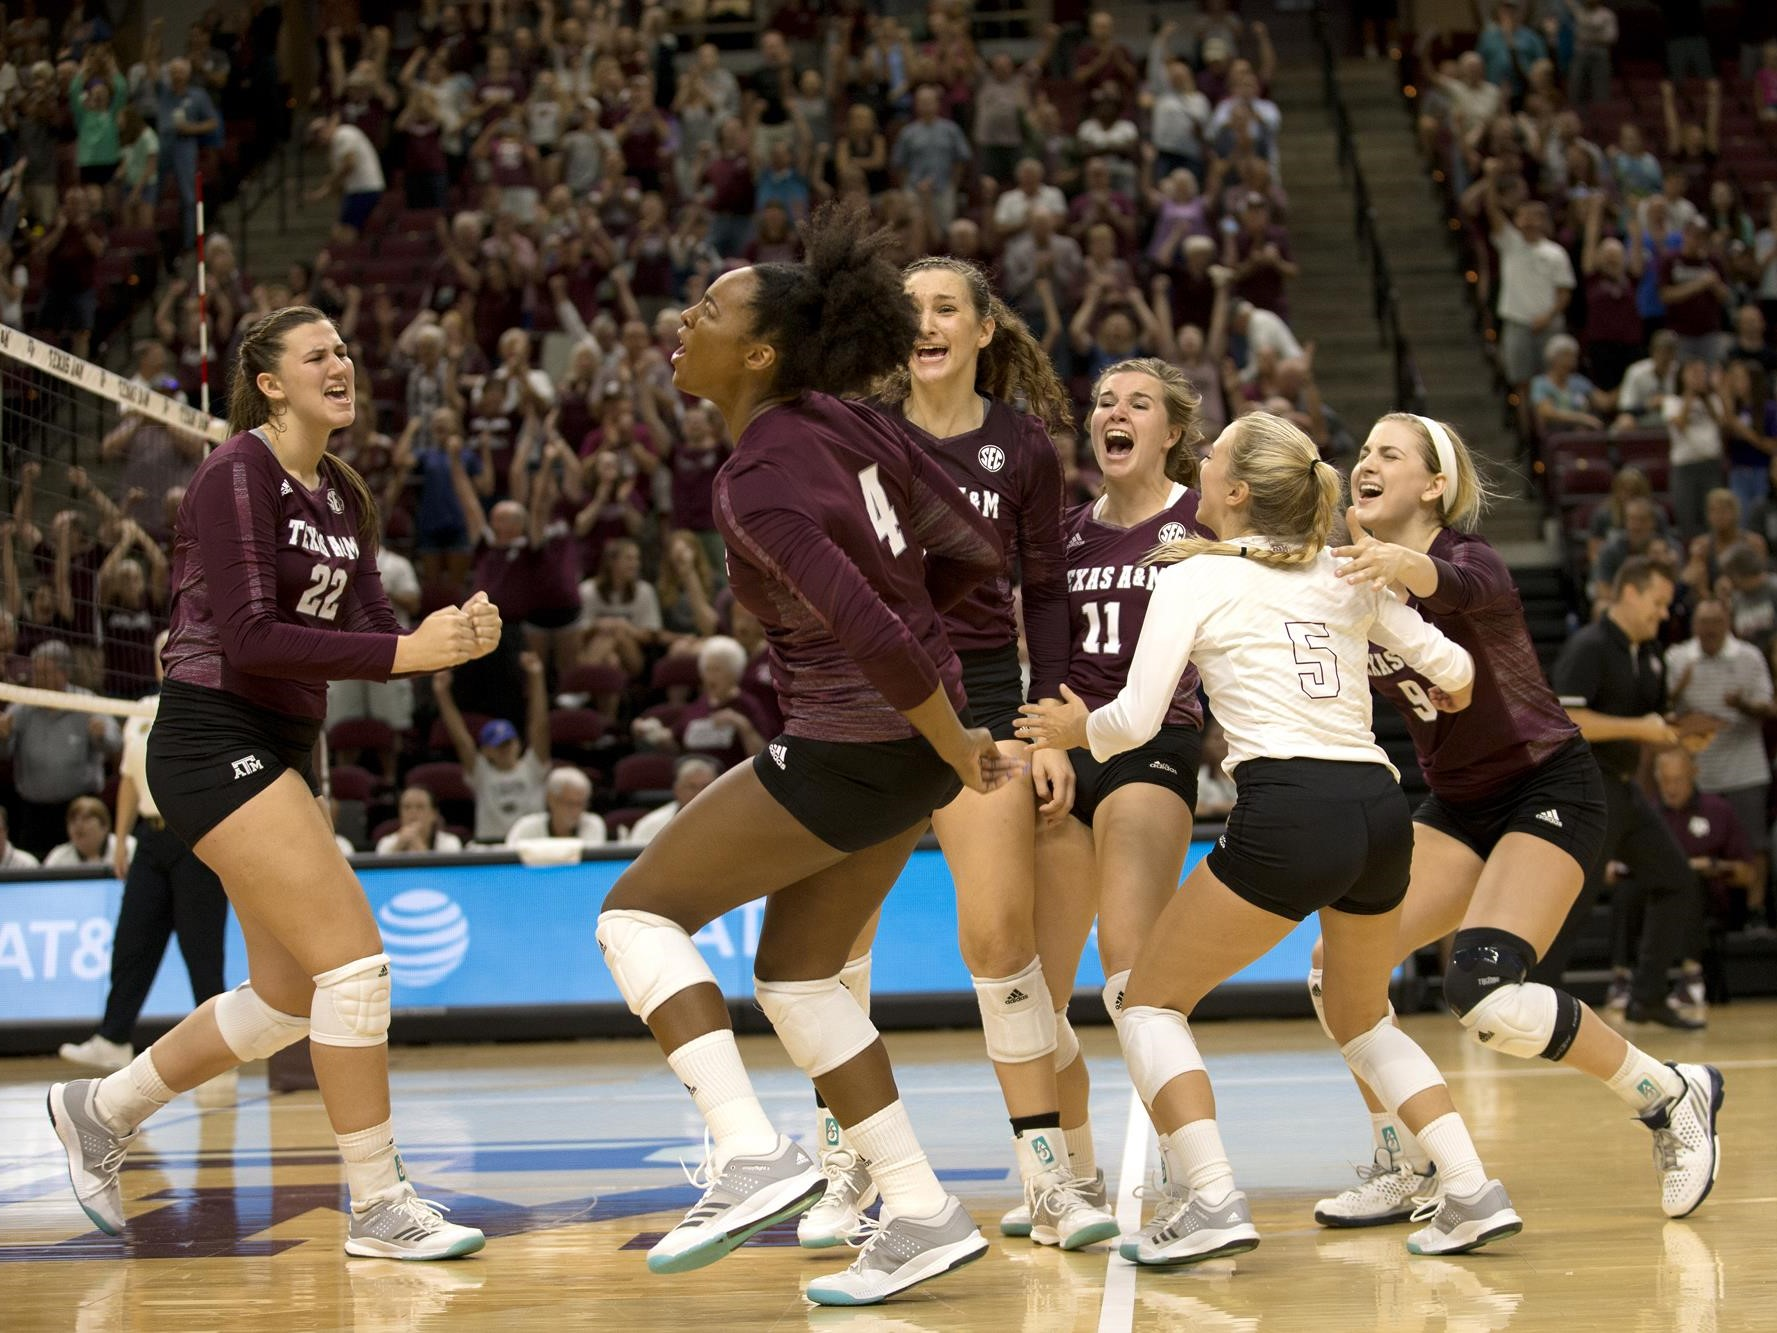 Kiara Mcgee Volleyball Texas A M Athletics Home Of The 12th Man